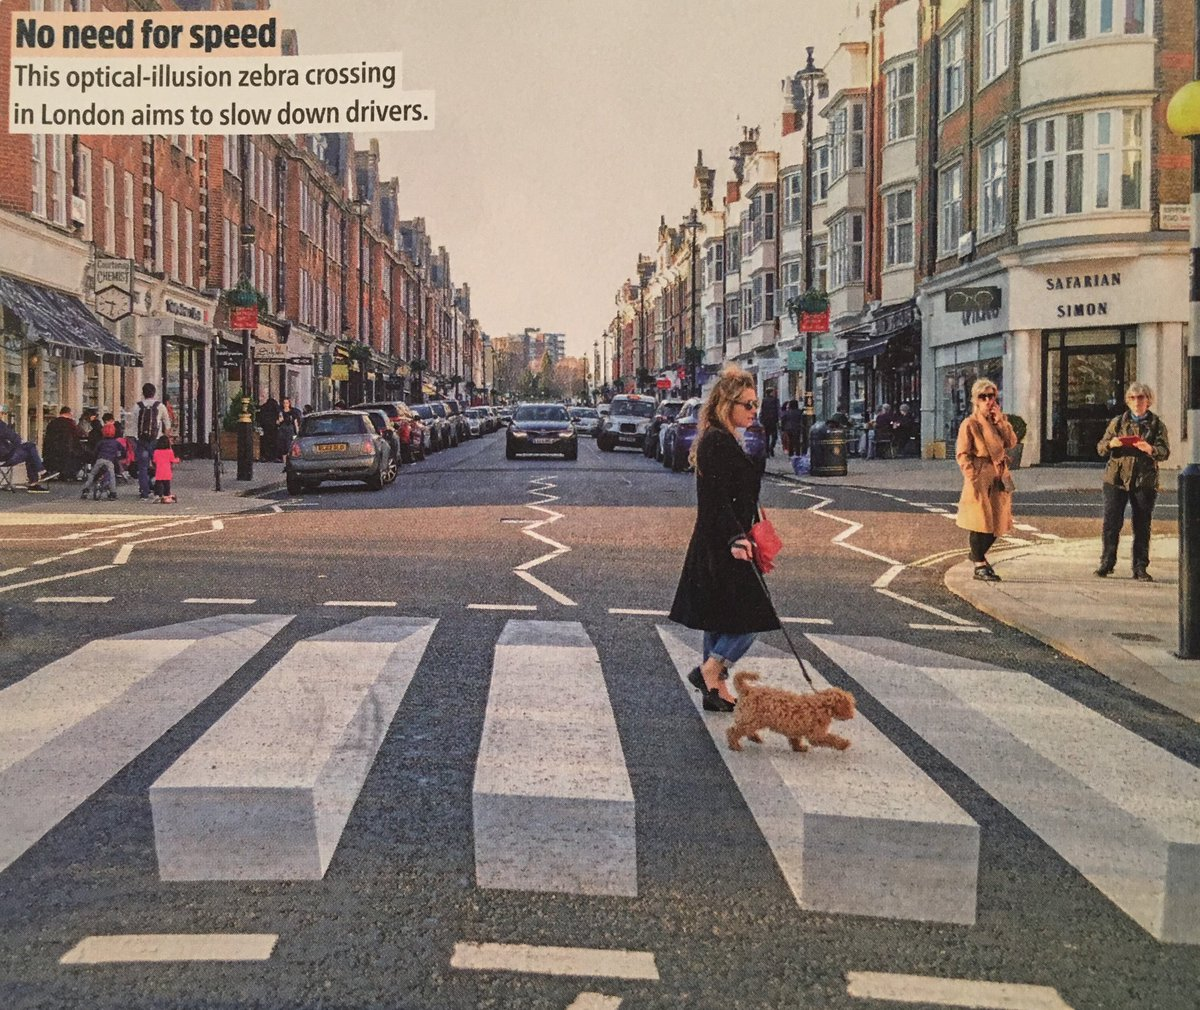 Smart 3D nudge on a London zebra crossing that aims to slow drivers down